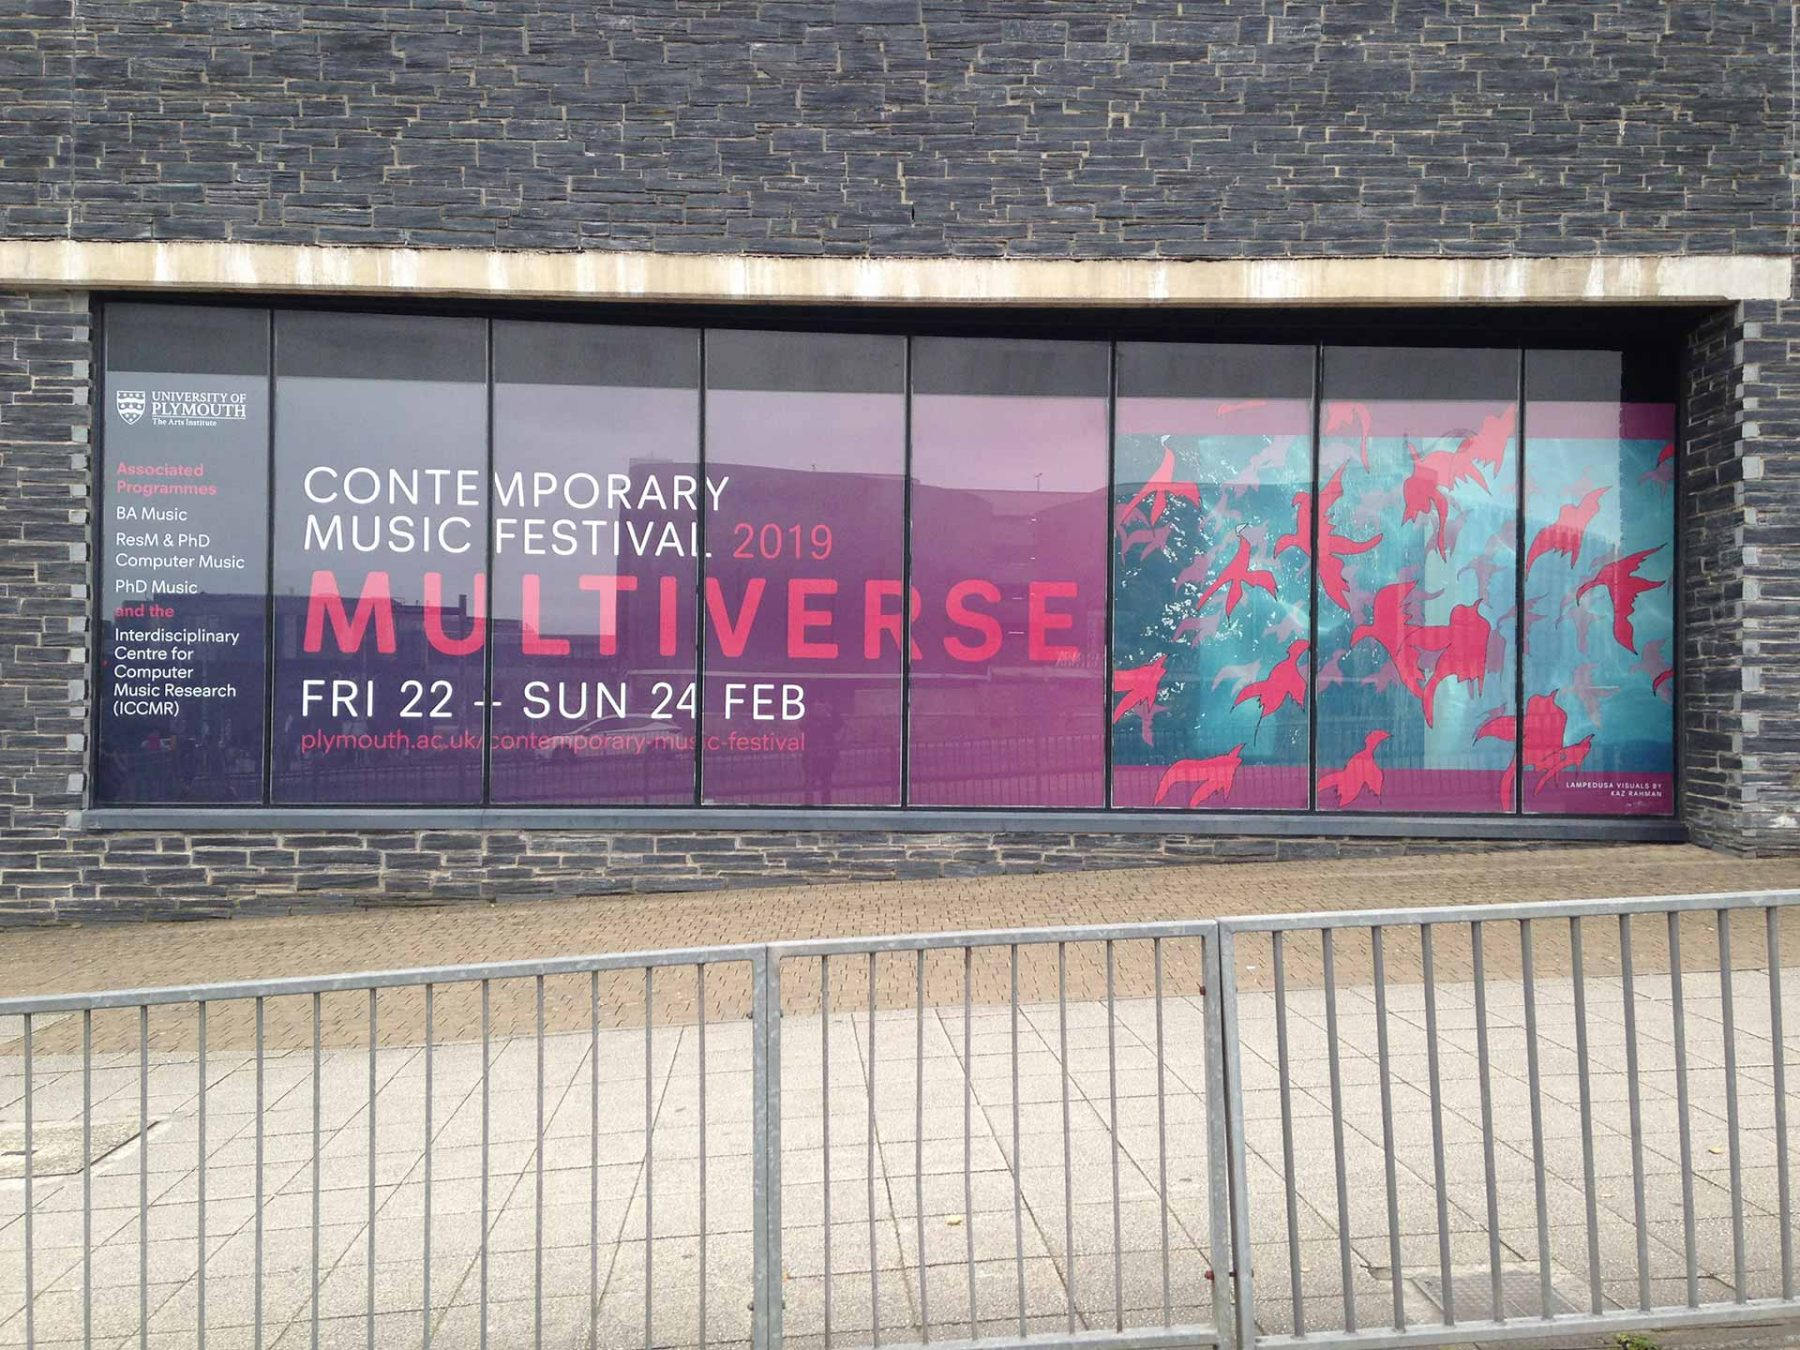 Multiverse Contemporary Music Festival (2019), Roland Lewinsky Building, University of Plymouth, UK